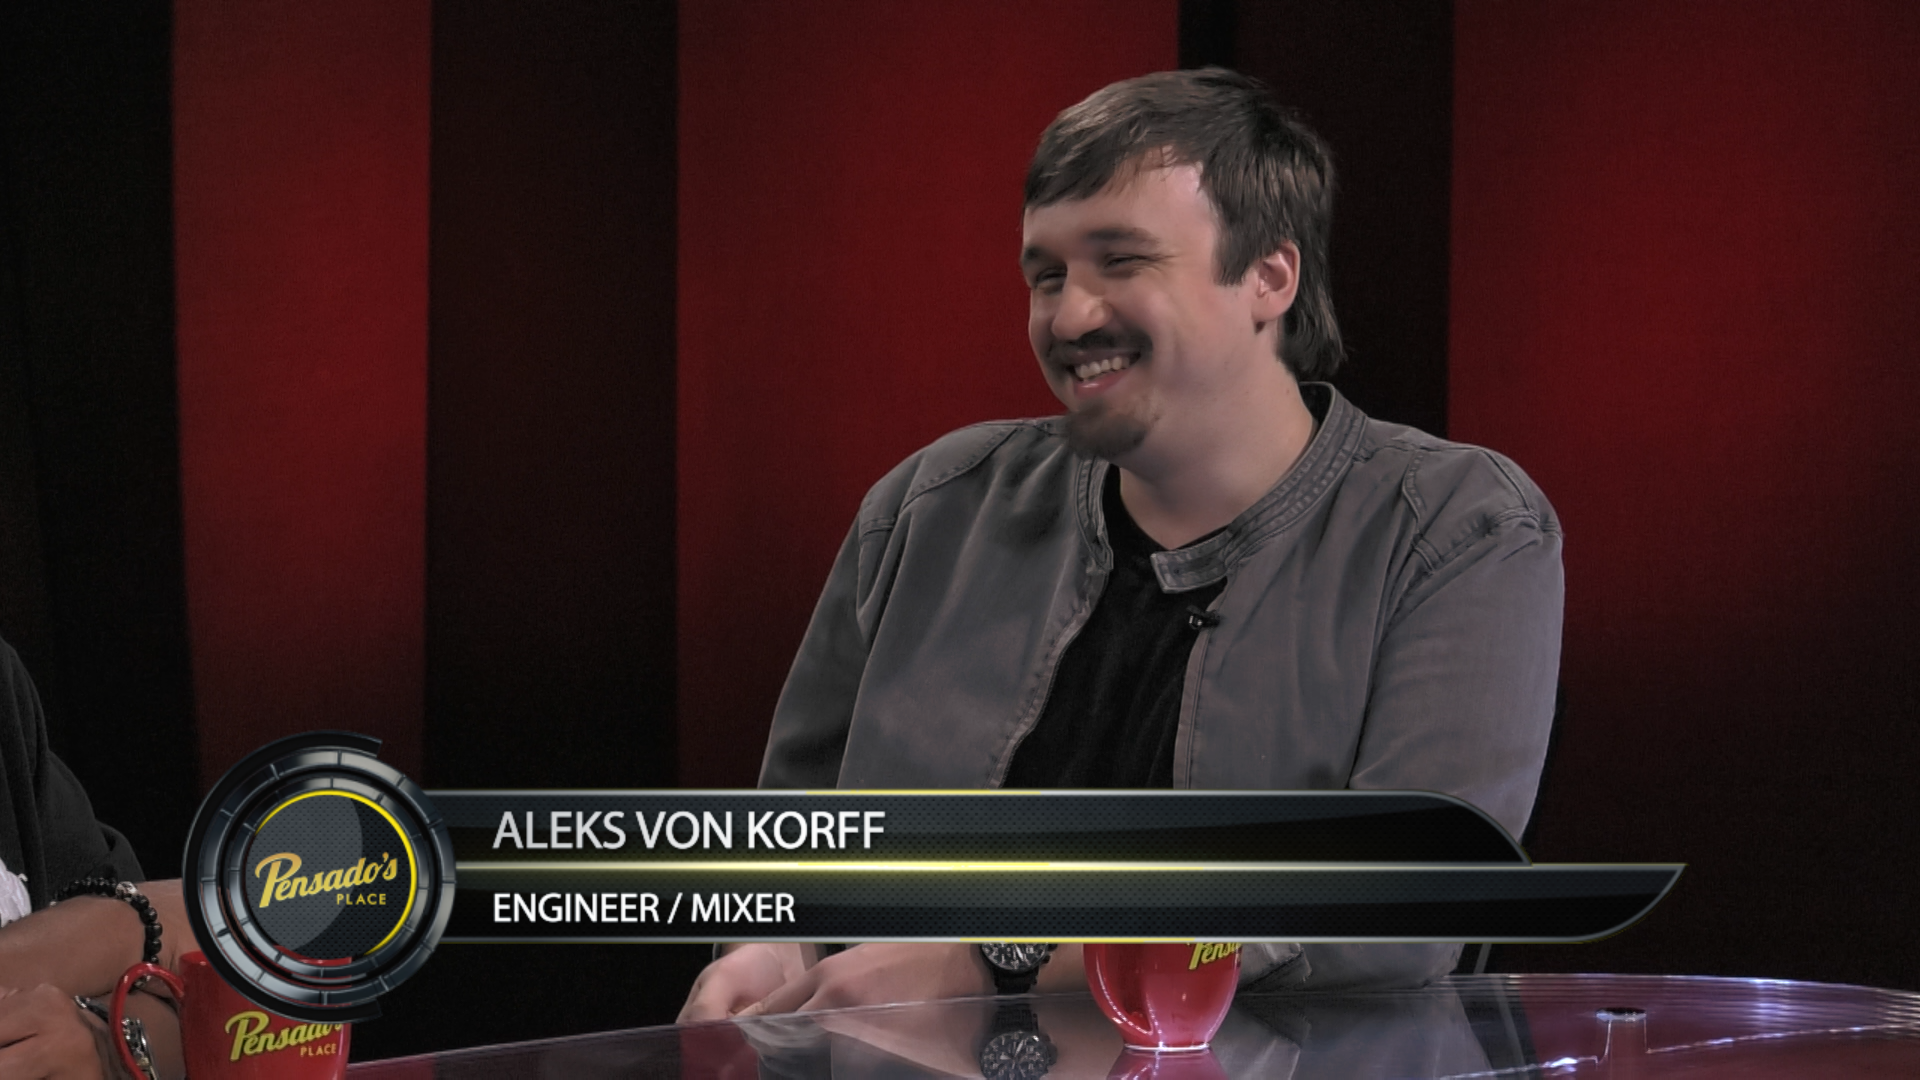 Mixer/Engineer Aleks von Korff